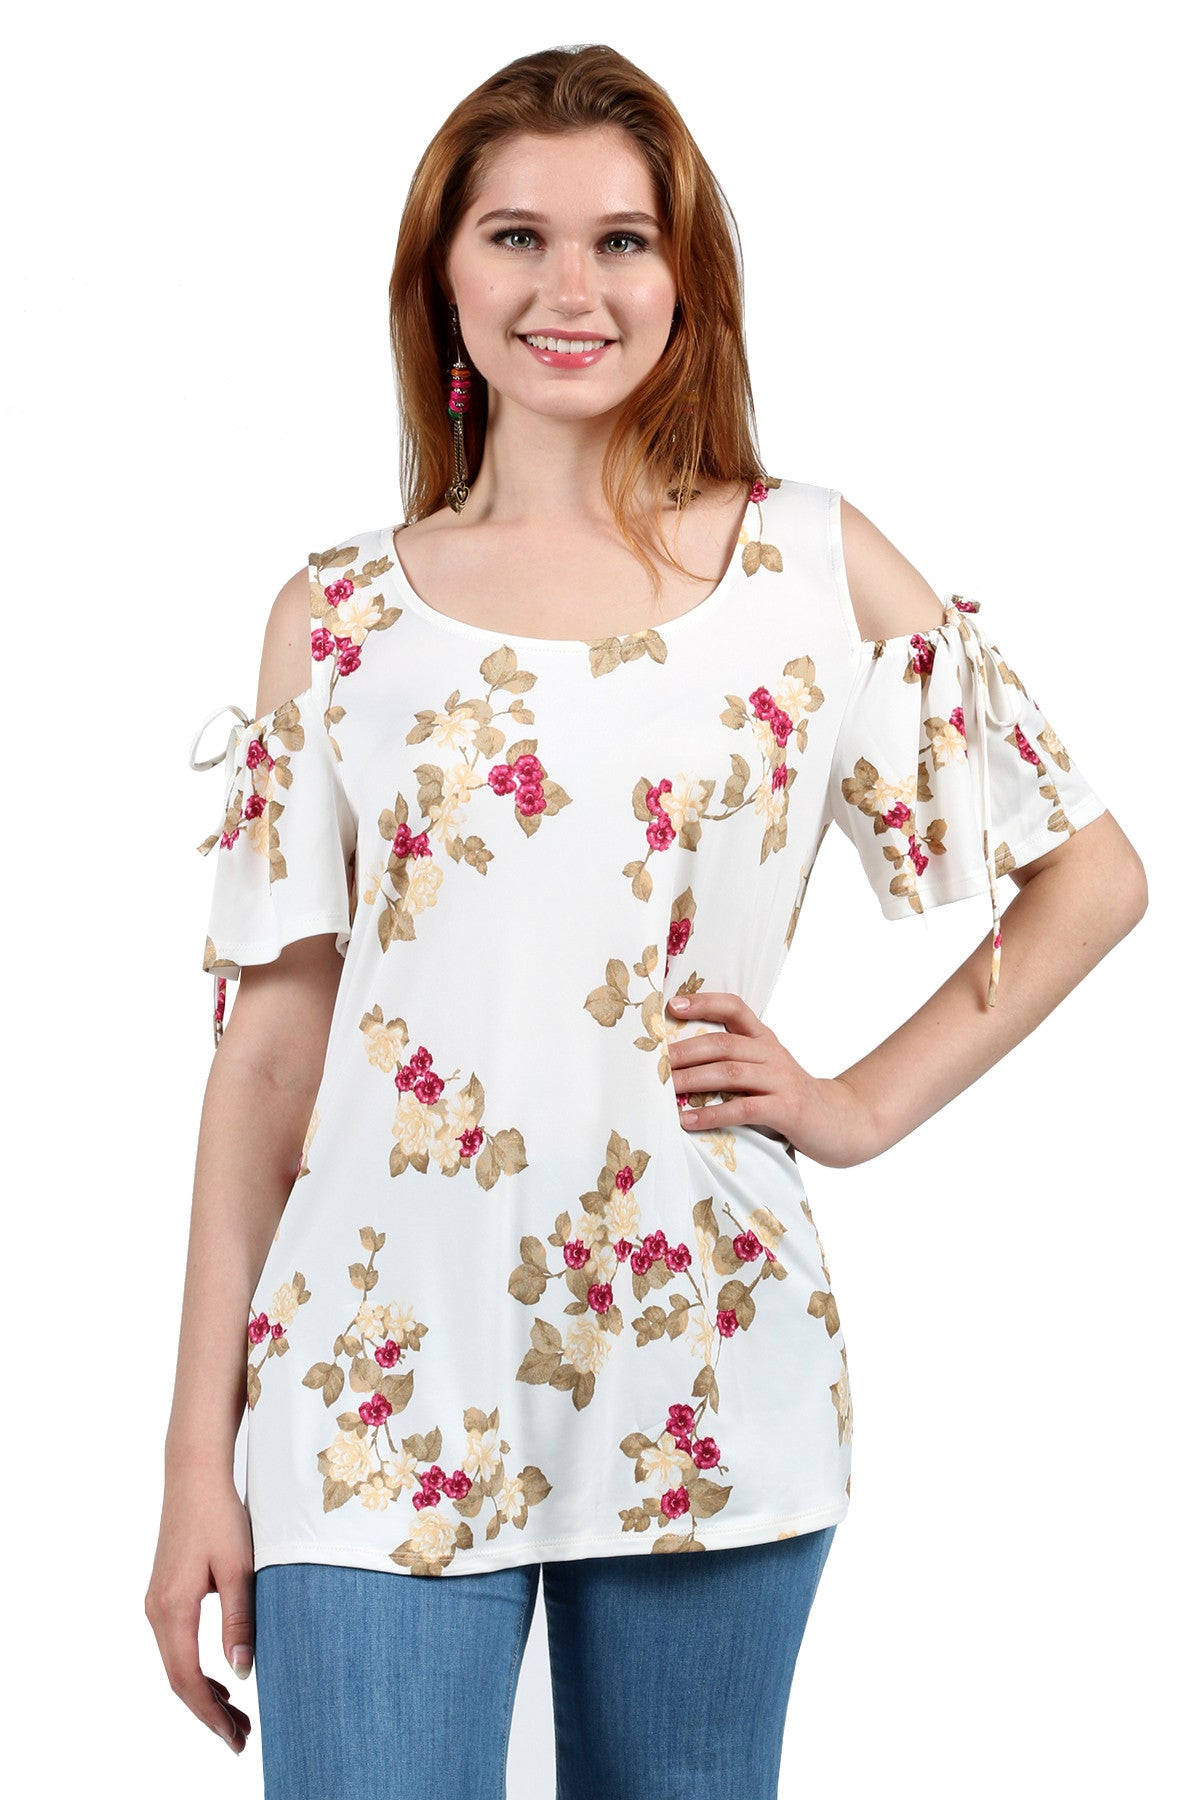 Casual Cold Shoulder Floral Print Blouse Tunic Top